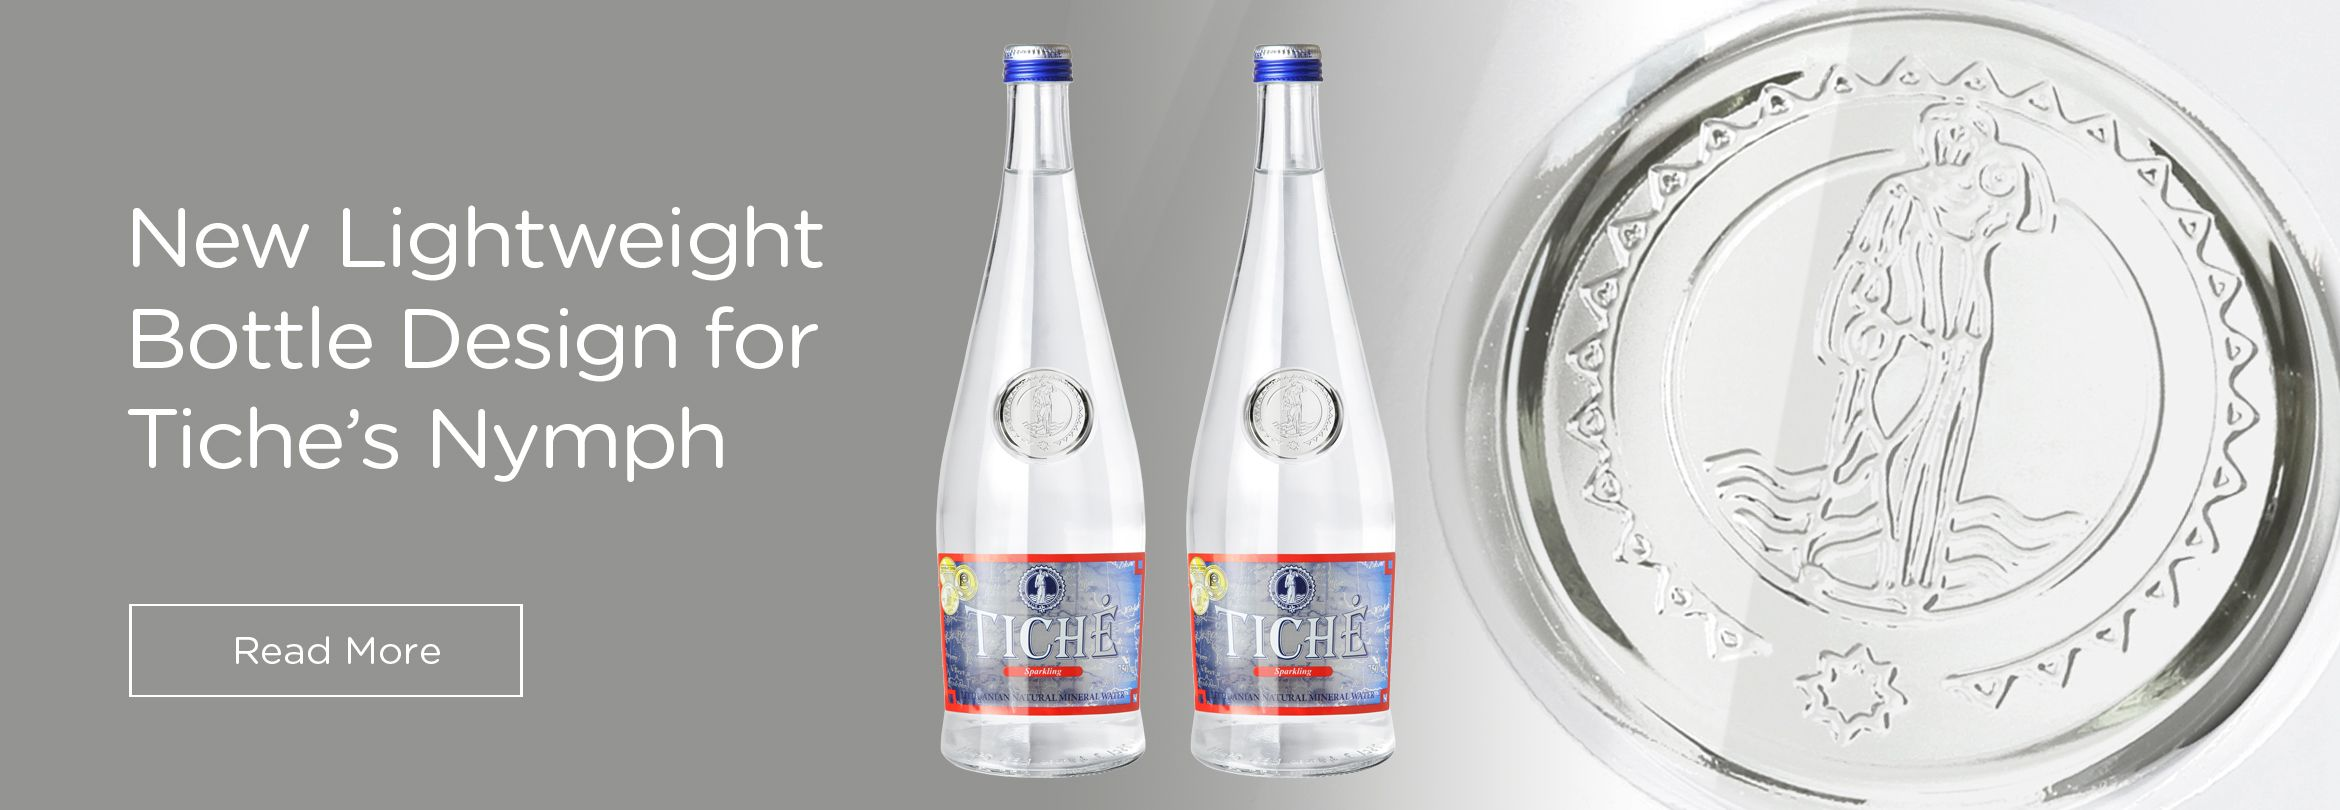 New Lightweight Bottle Design for Tiche's Nymph